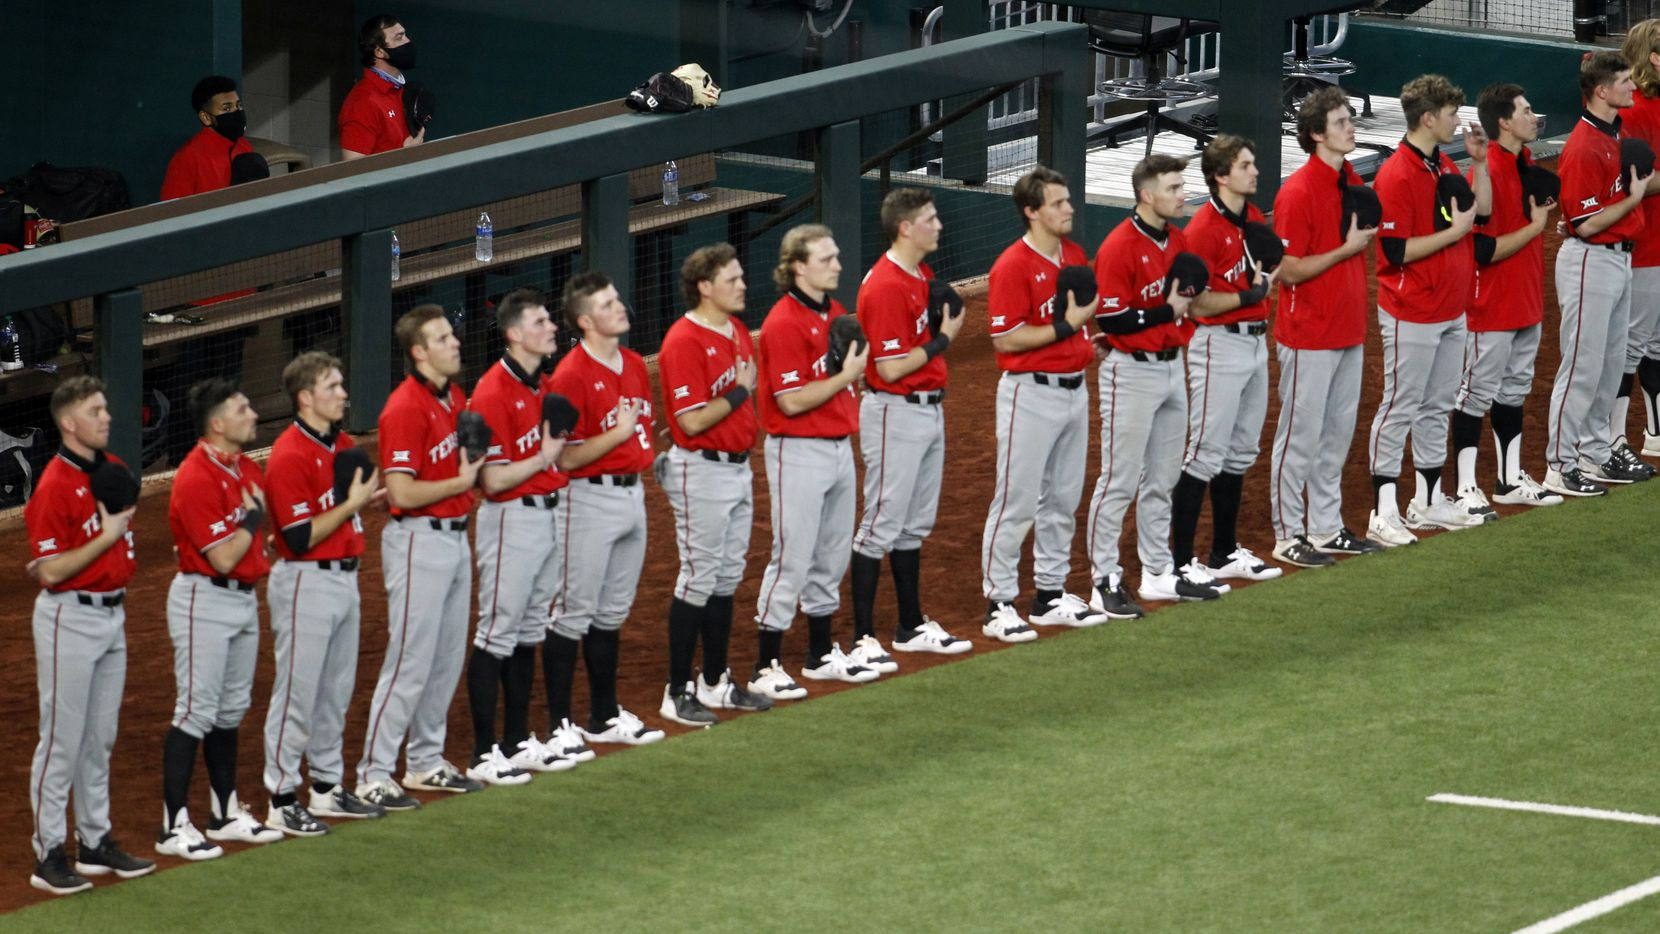 Members of the Texas Tech Red Raiders baseball team pause for the playing of the national anthem prior to the start of their game against Ole Miss. Texas Tech played Ole Miss in conjunction with the State Farm College Baseball Showdown tournament held at Globe Life Field in Arlington on February 21, 2021.